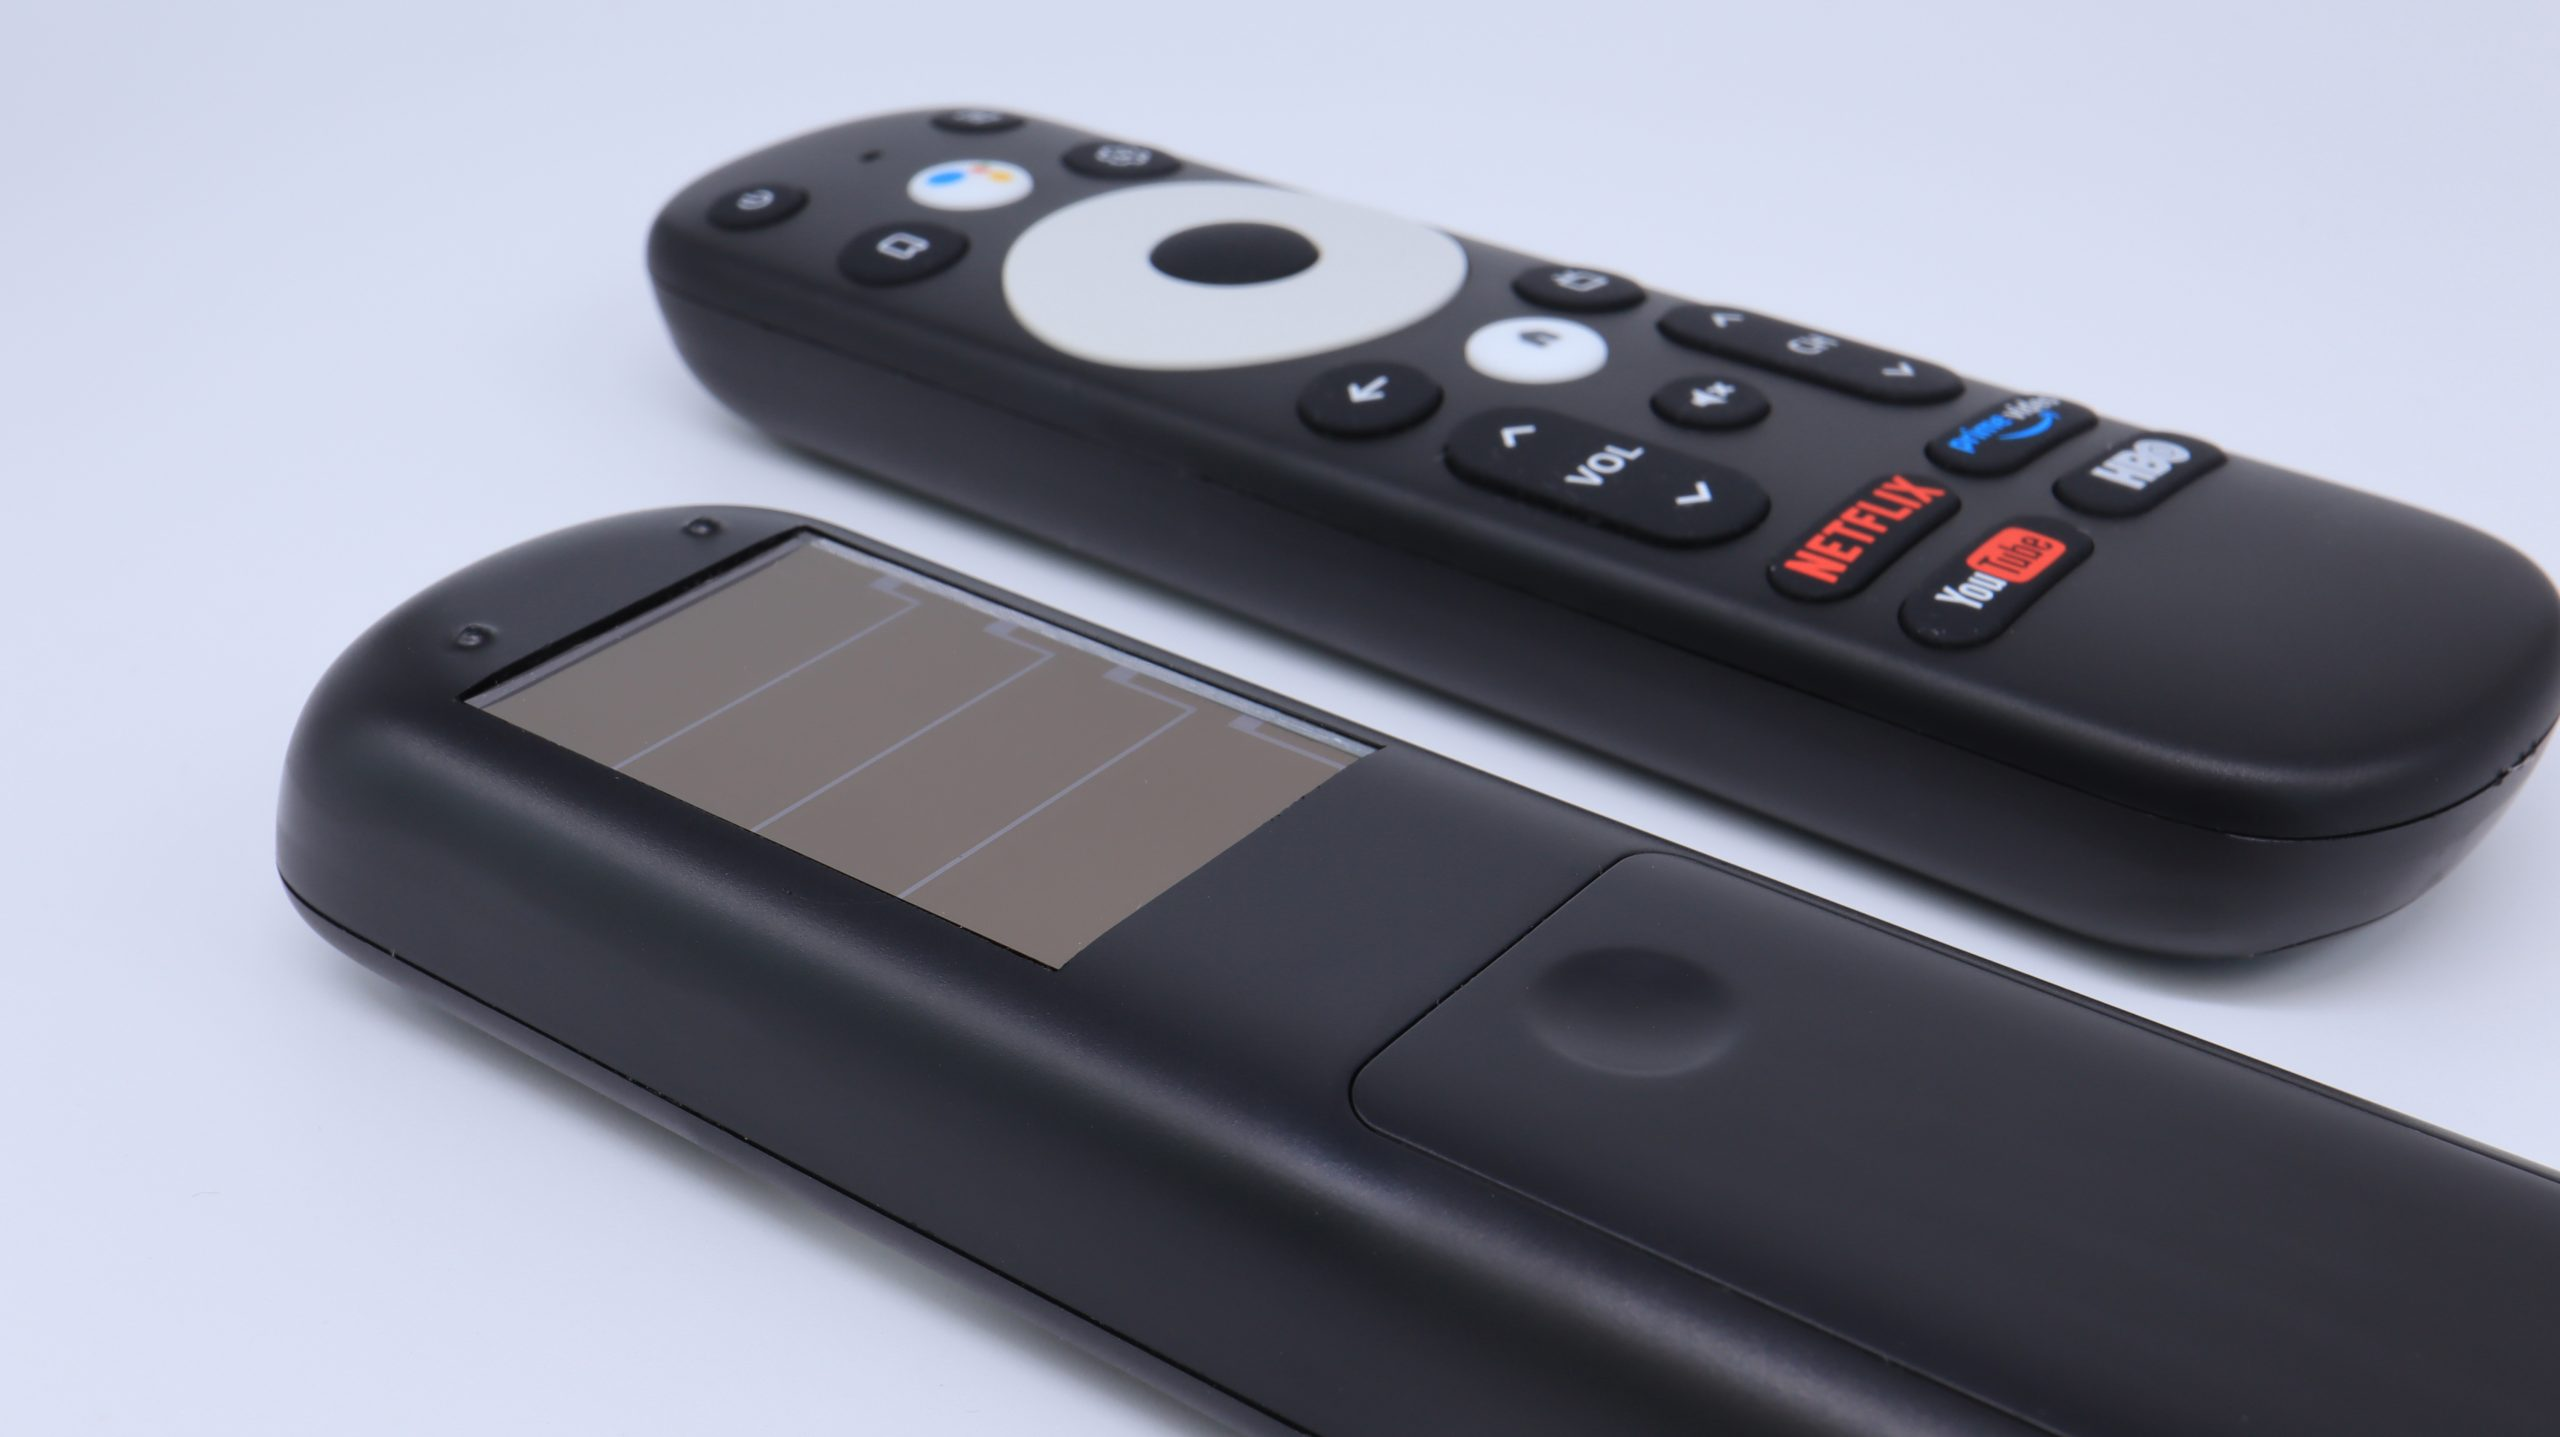 Remote Solution Chooses Nowi as Partner to Develop Solar-powered Remote Controls